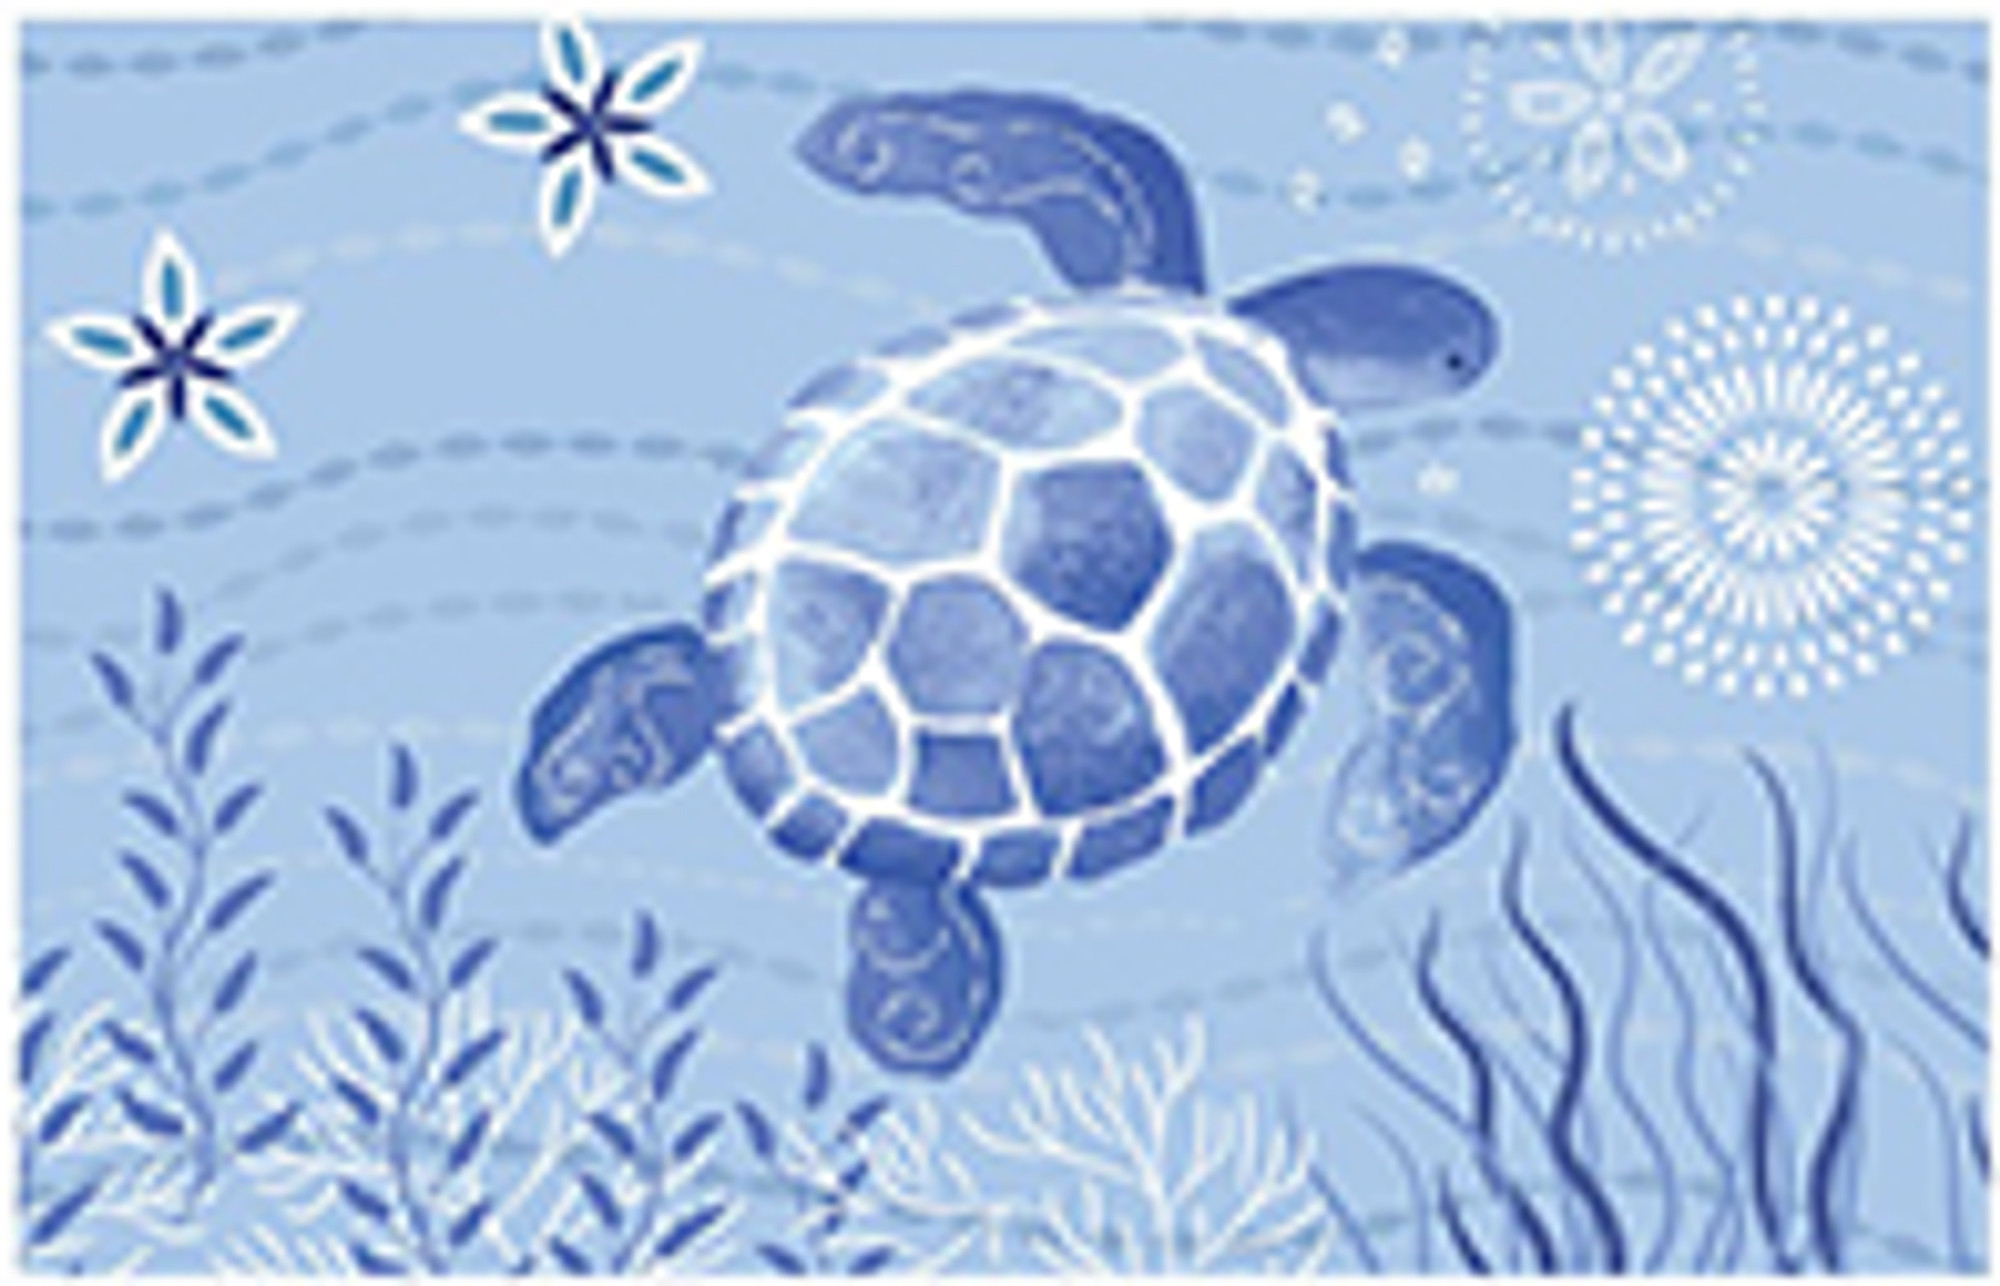 This Jellybean® accent rug features a blue turtle swimming through cool waters and navy colored plant life. Polyester fibers make this underwater scene accessible indoors and out. Designed by Sharon Lee, this machine washable rug is crafted for continued enjoyment.